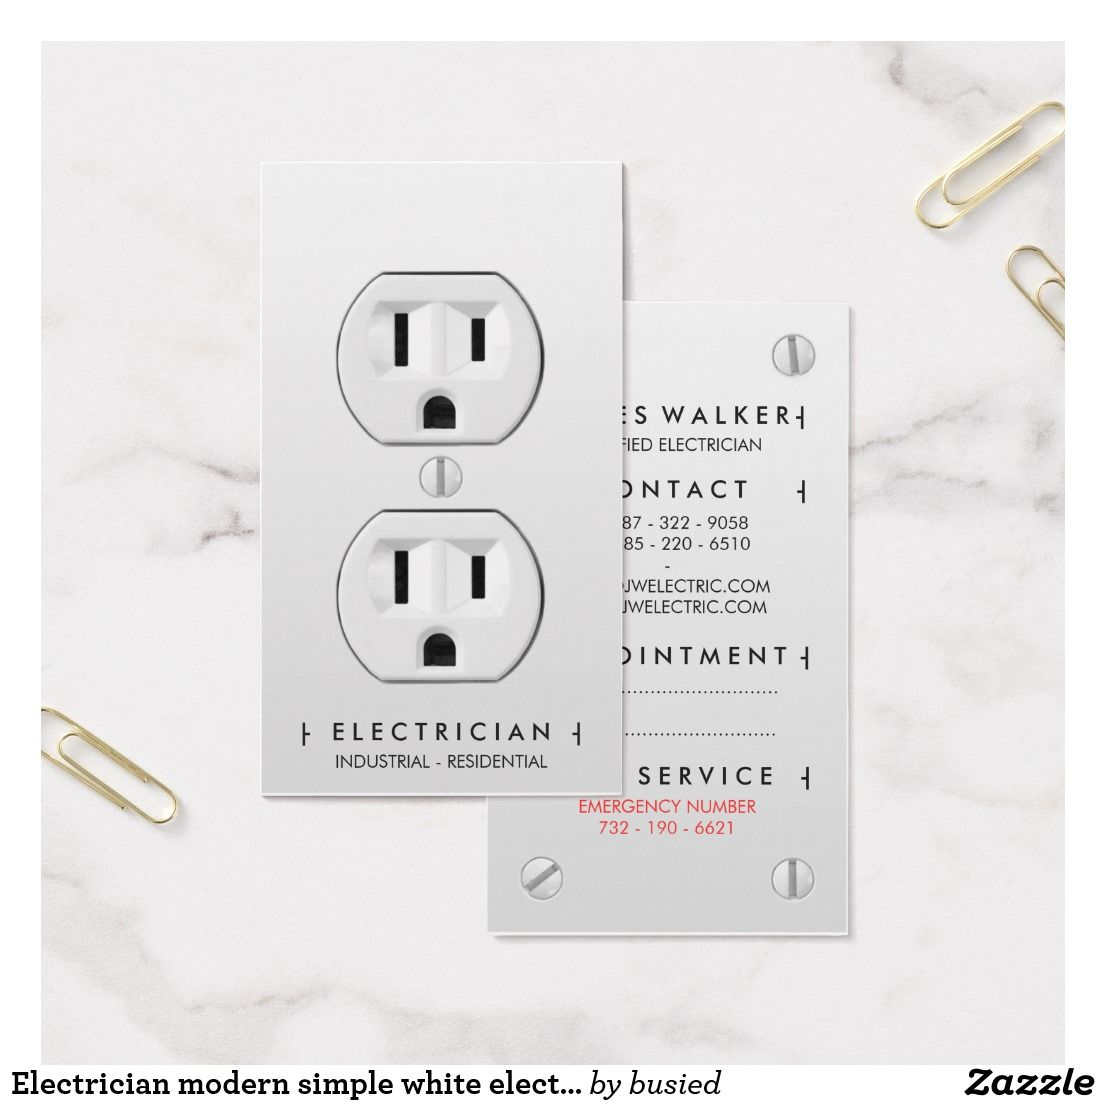 Electrician modern simple white electrical outlet appointment card ...